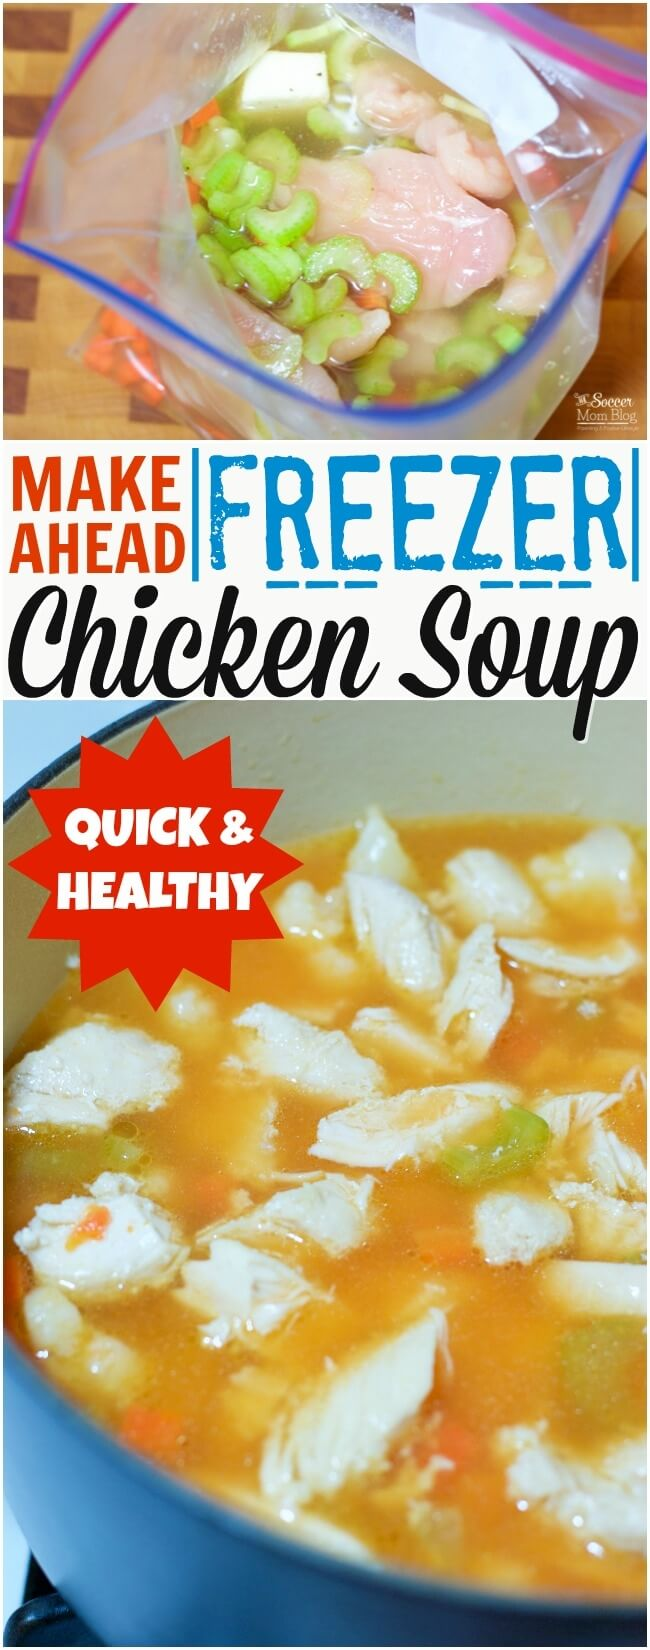 Save a ton of time and money with this easy meal prep chicken soup! A comfort food classic perfect to make ahead for busy weekdays (5 min prep!)